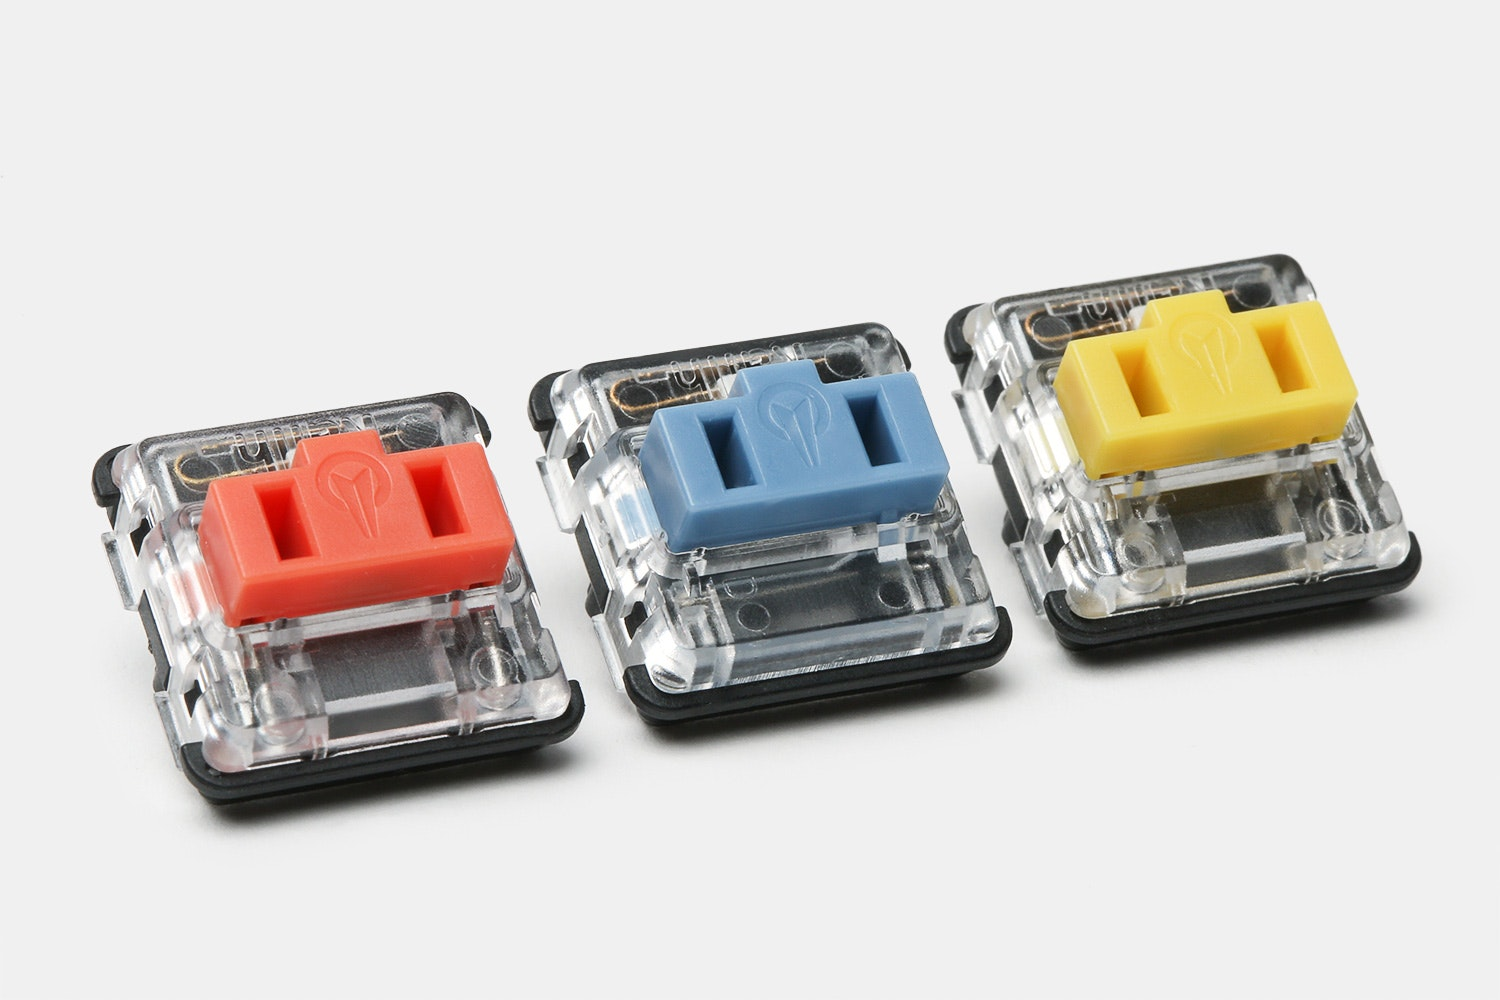 NovelKeys x Kailh Low-Profile Heavy Switches